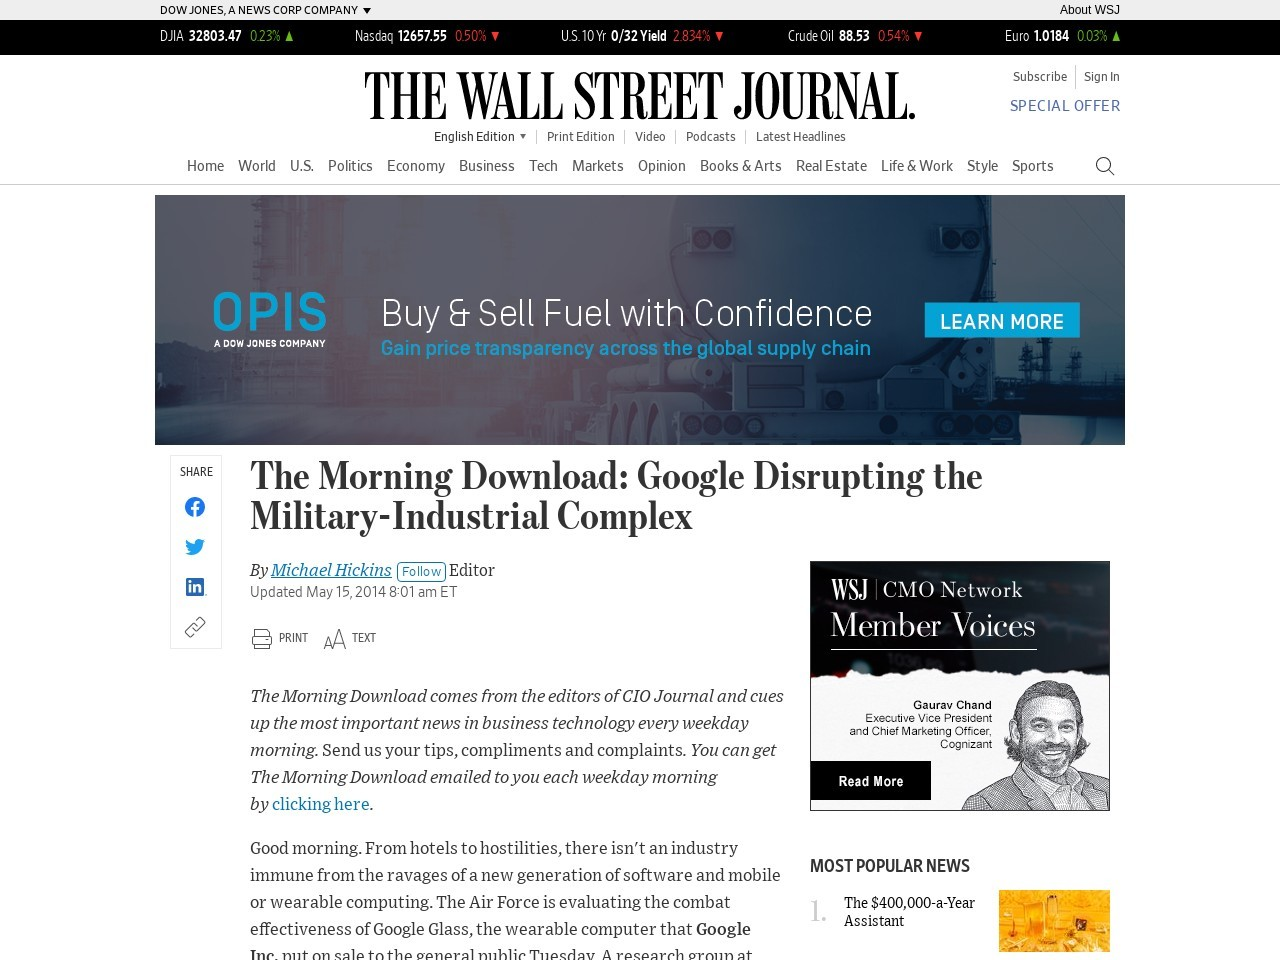 The Morning Download: Google Disrupting the Military-Industrial Complex